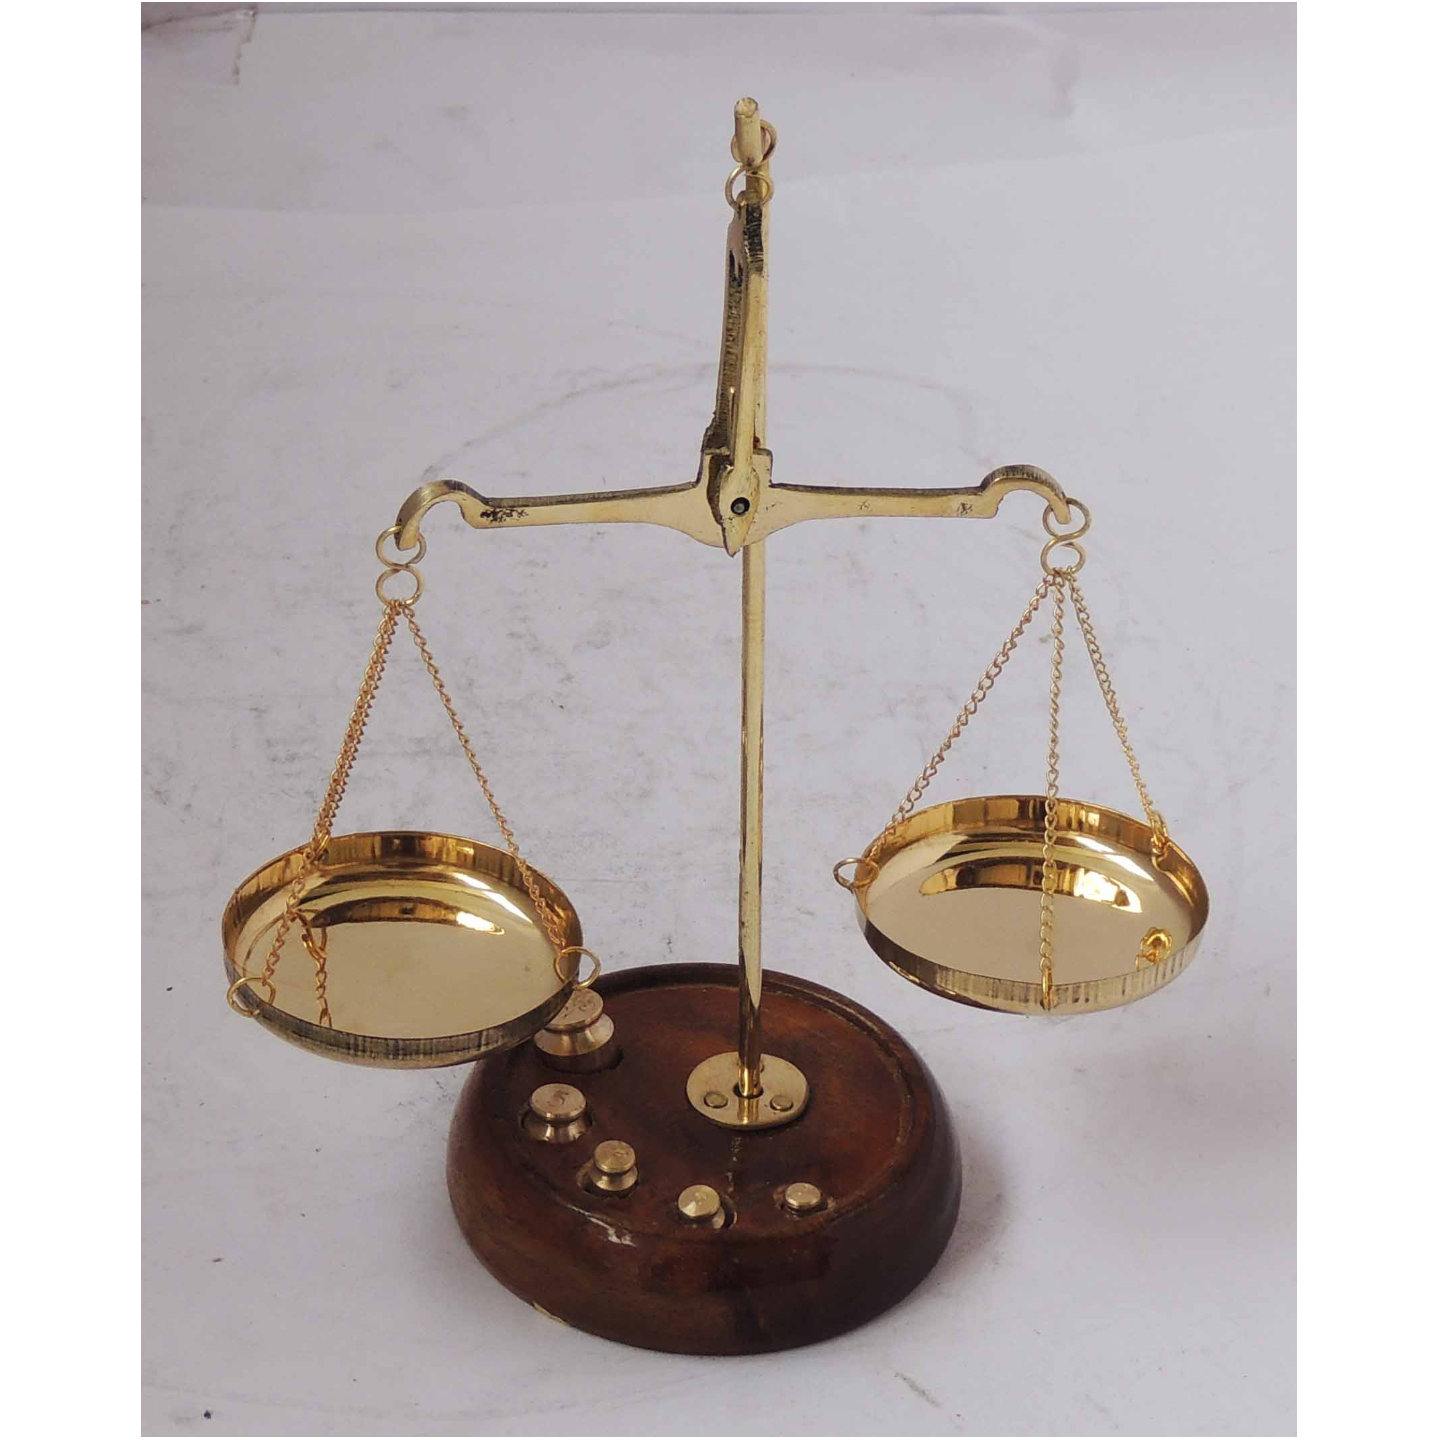 Brass Taarzu 20 gm Weighing Machine - 5.52.57 inch  Z303 C